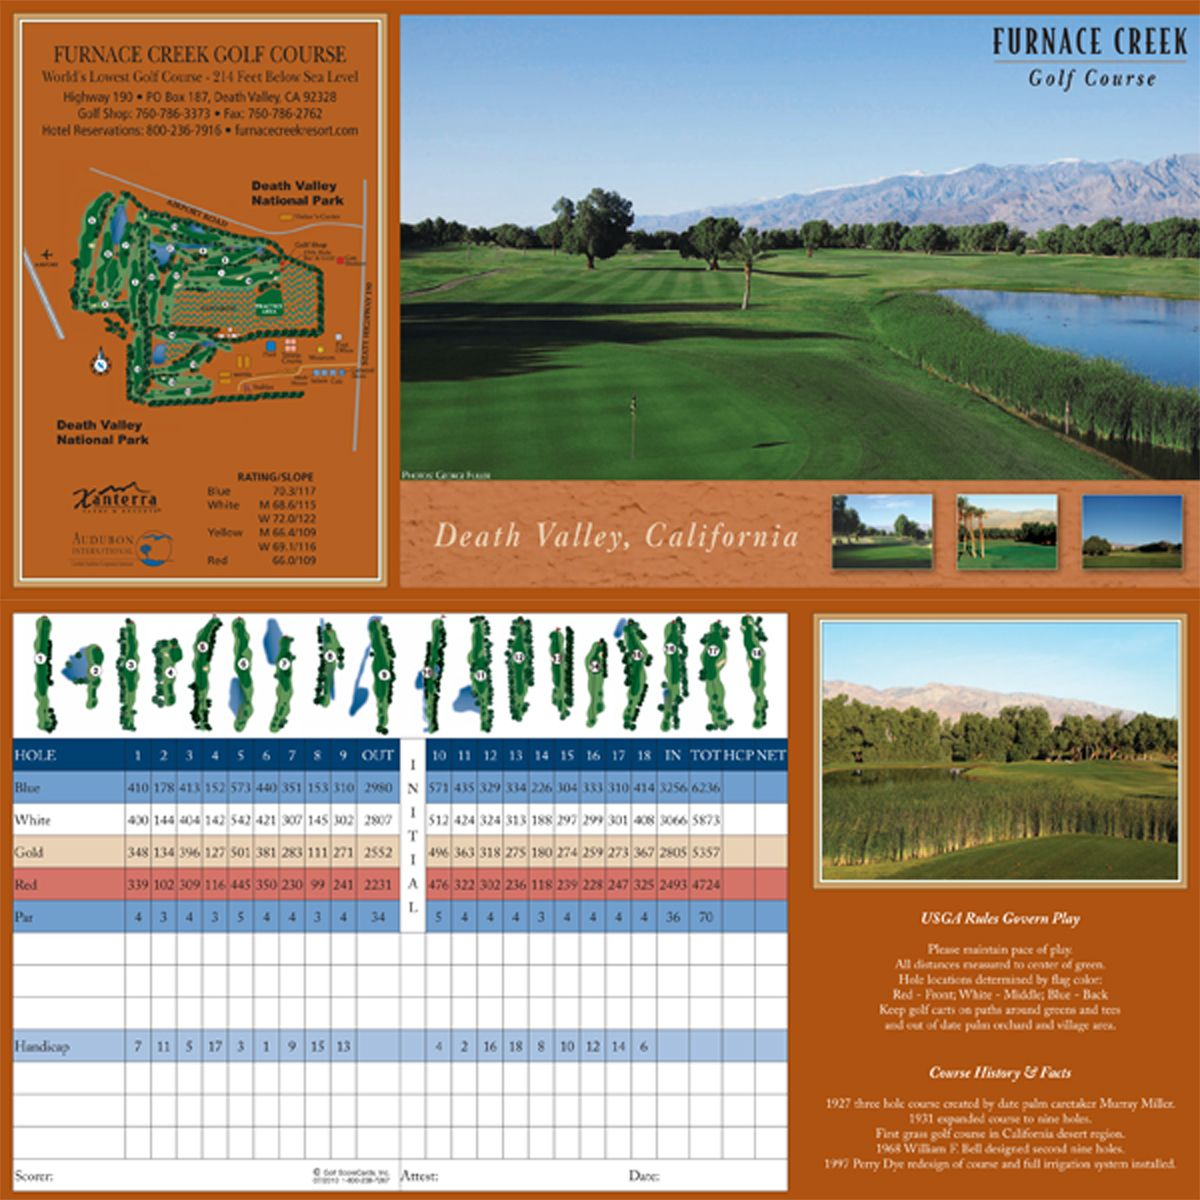 Furnace Creek Resort Death Valley CA good lowest course in US